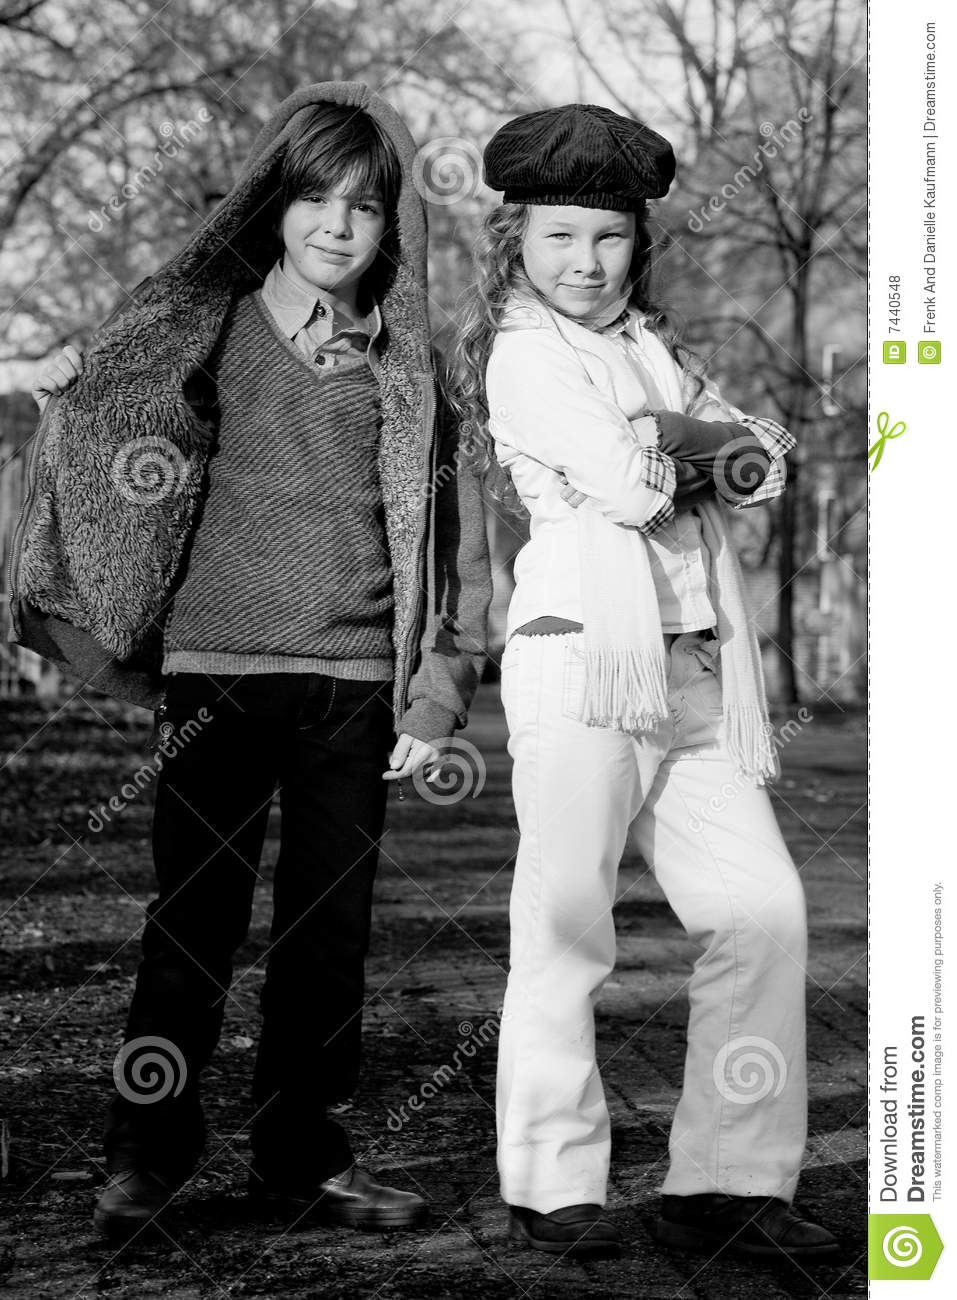 Fashion Boy And Girl Royalty Free Stock Photos Image